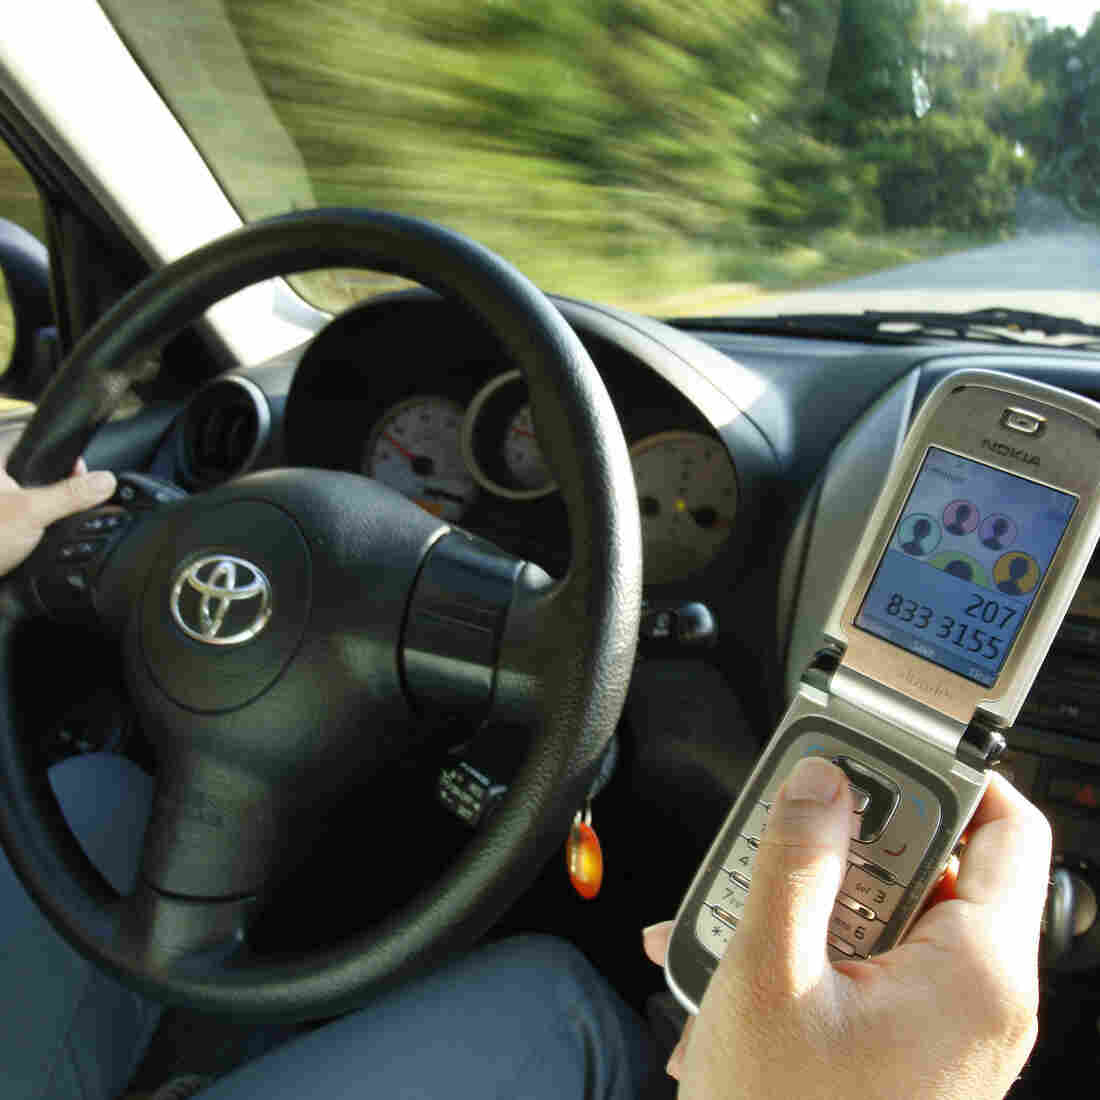 Distracted Driving: We're All Guilty, So What Should We Do About It?